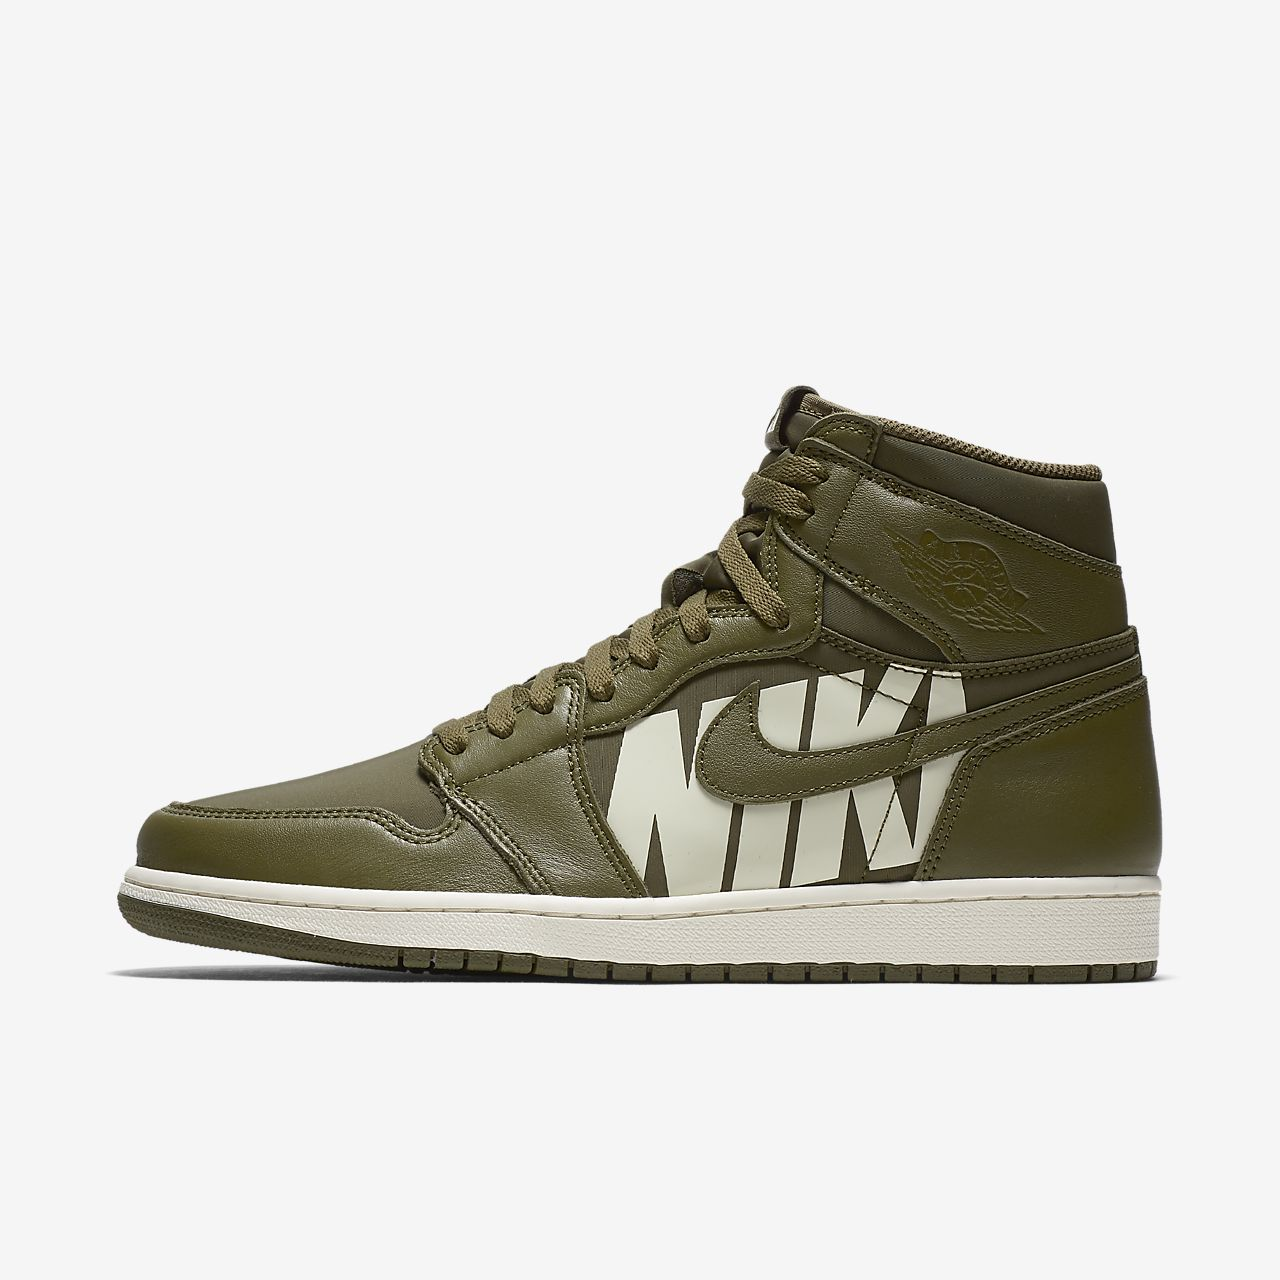 b57a4e694a0cca Air Jordan 1 Retro High OG Shoe. Nike.com NZ